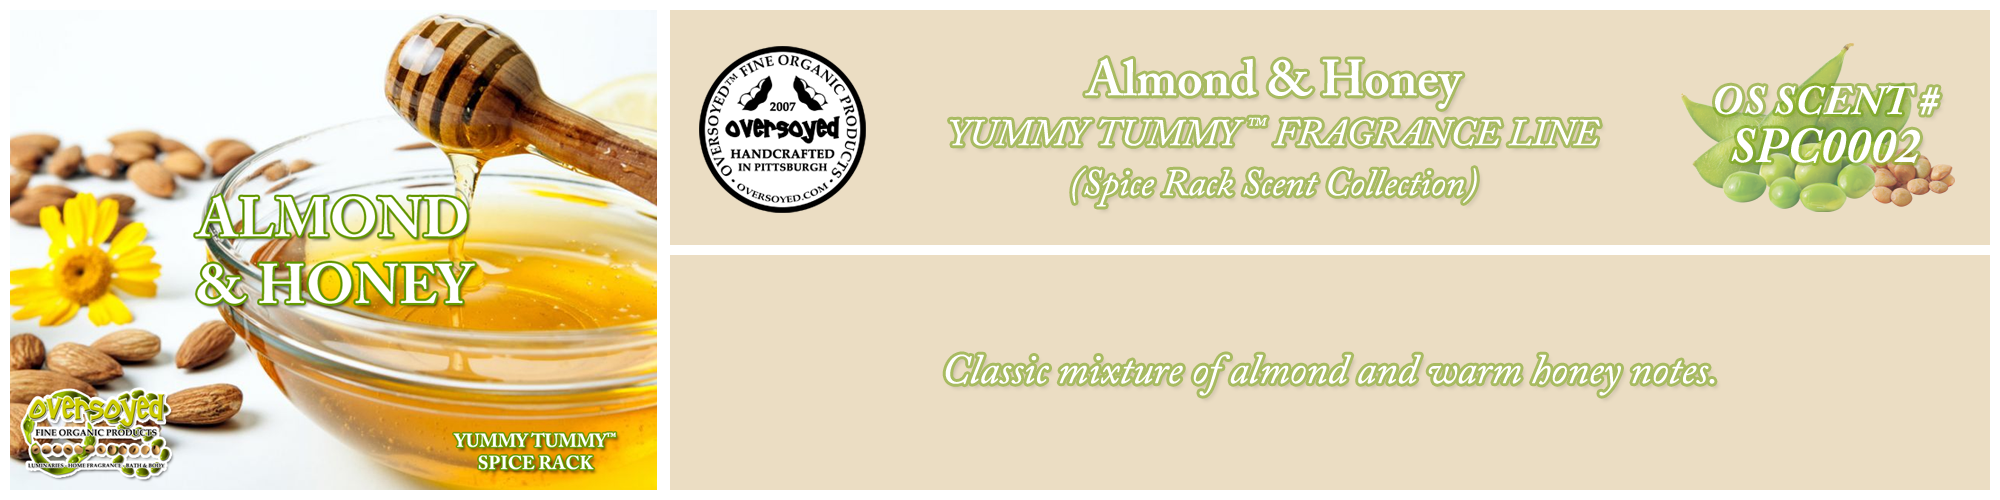 Almond & Honey Handcrafted Products Collection